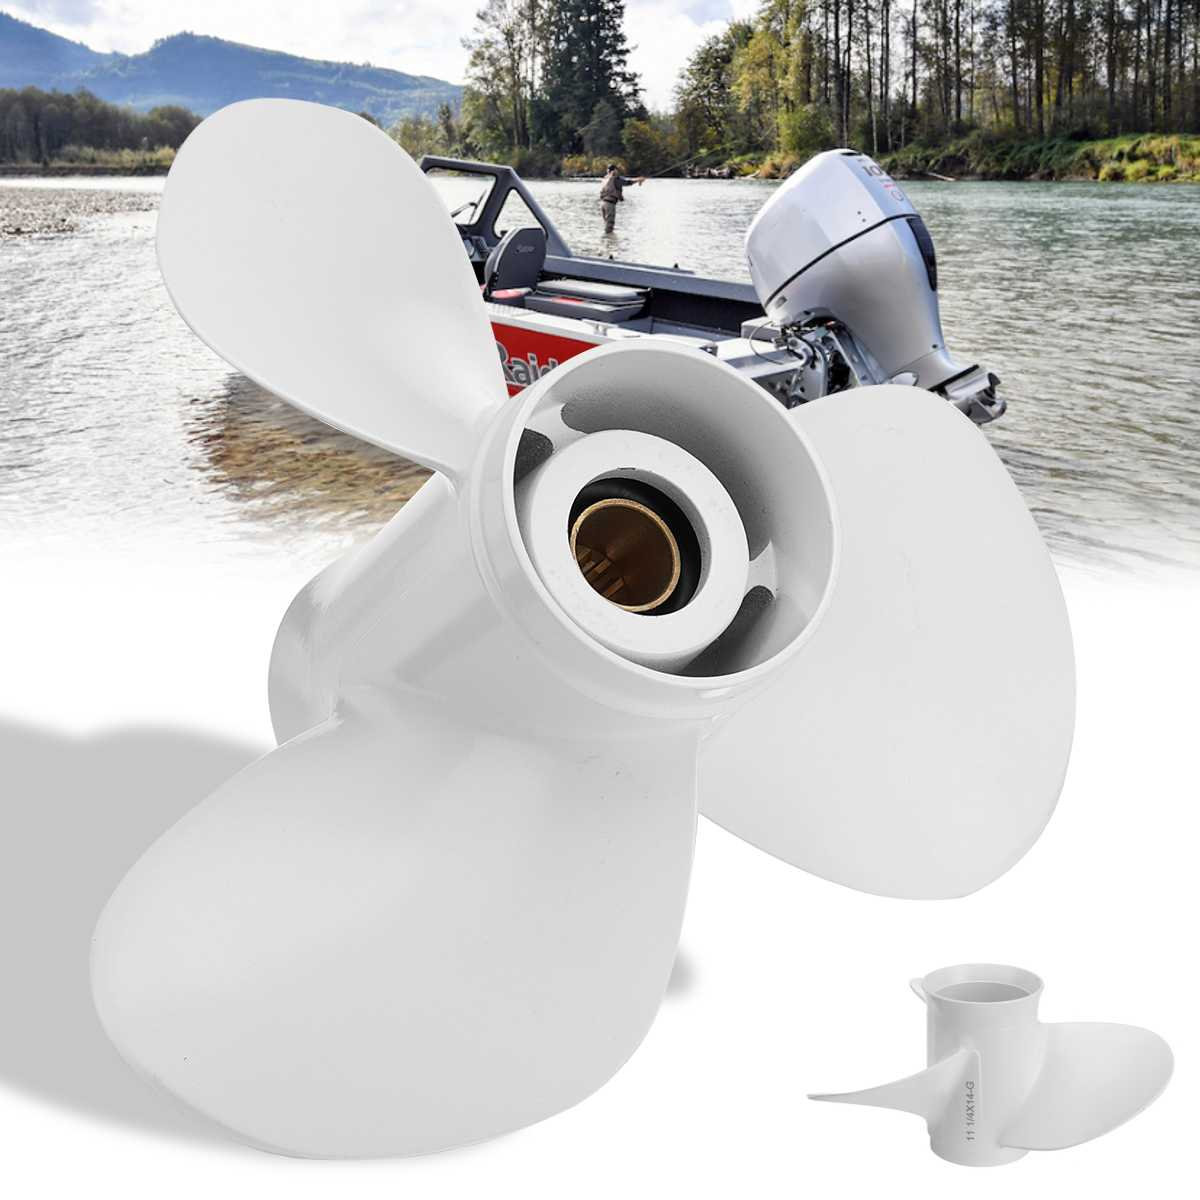 663-45958-01-EL 11 1/4 X 14 Aluminum Boat Outboard Propeller For Yamaha 25-60HP 3 Blades 13 Spline Tooth White R Rotation